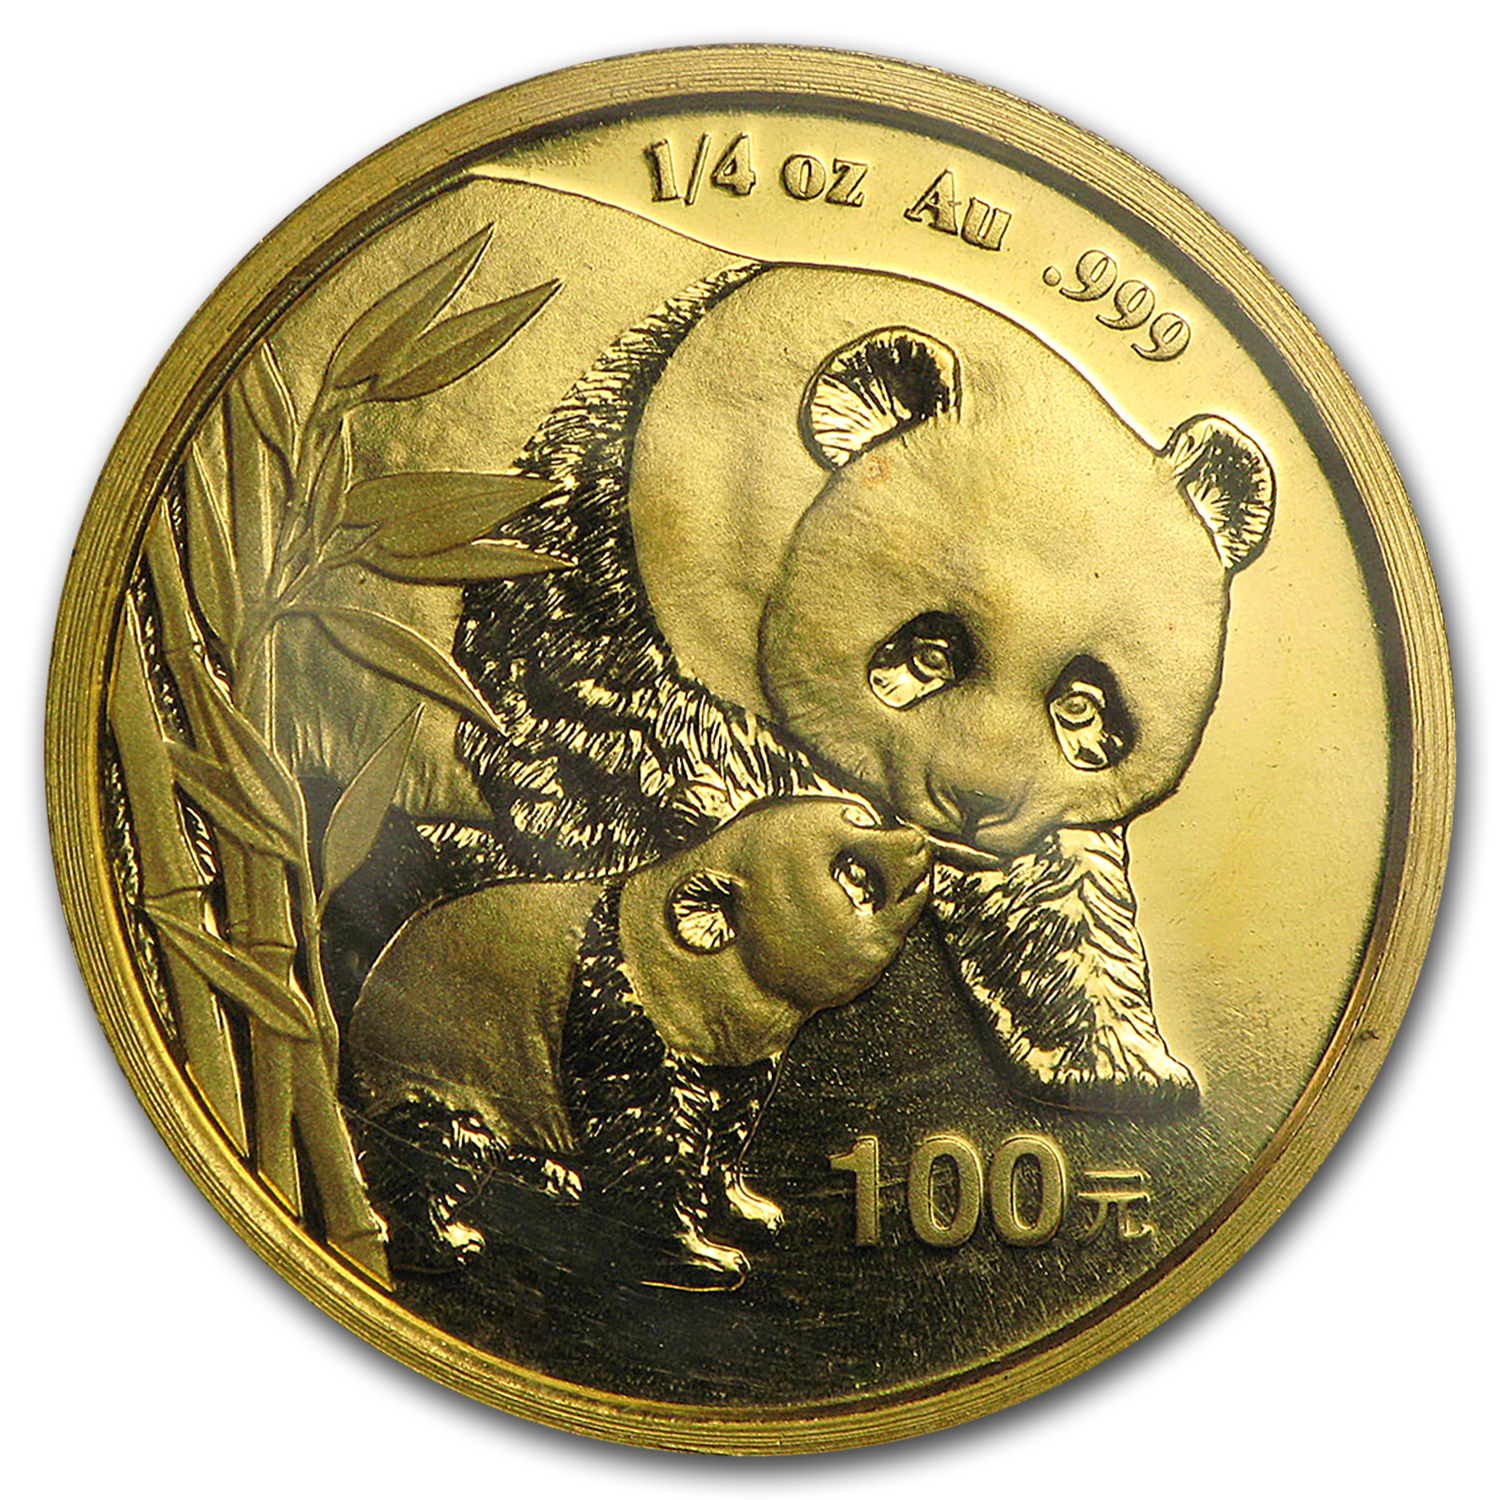 2004 China 1/4 oz Gold Panda BU (Sealed)